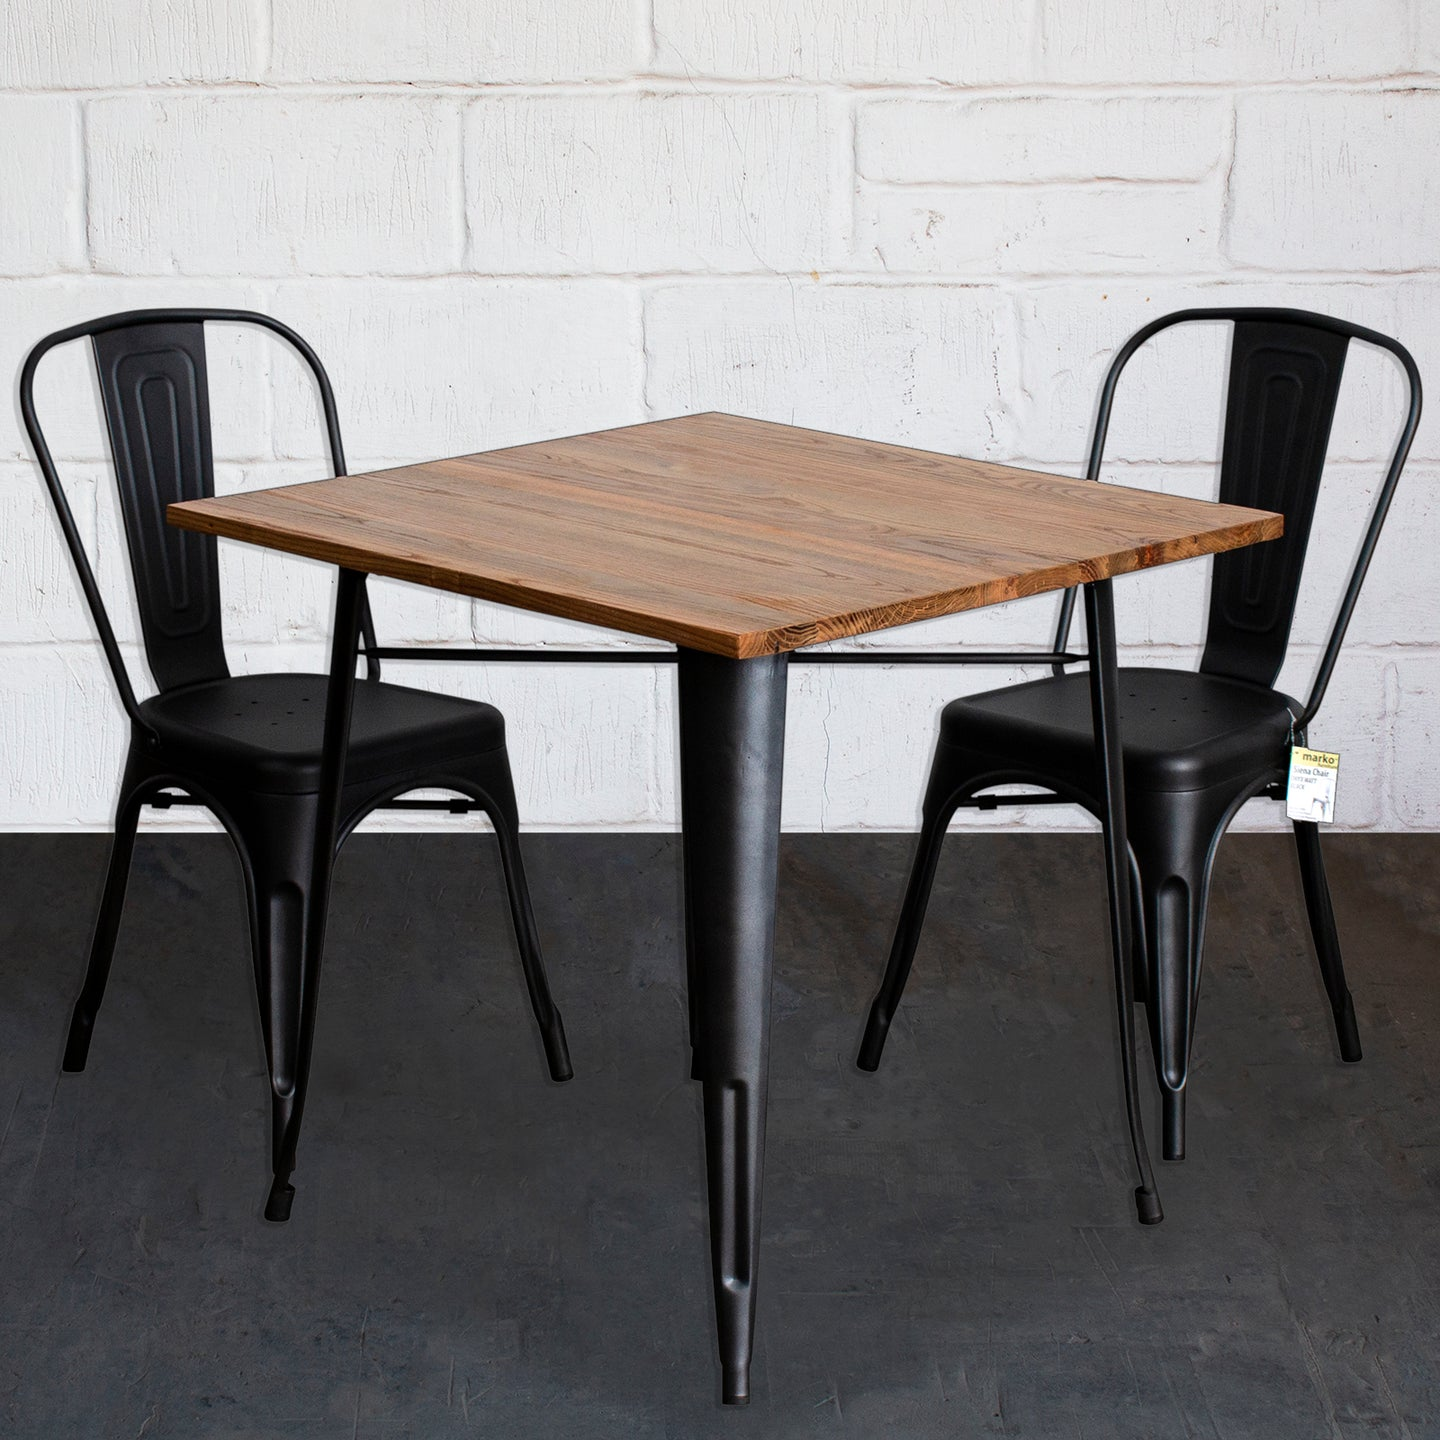 3PC Enna Table & Siena Chair Set - Onyx Matt Black